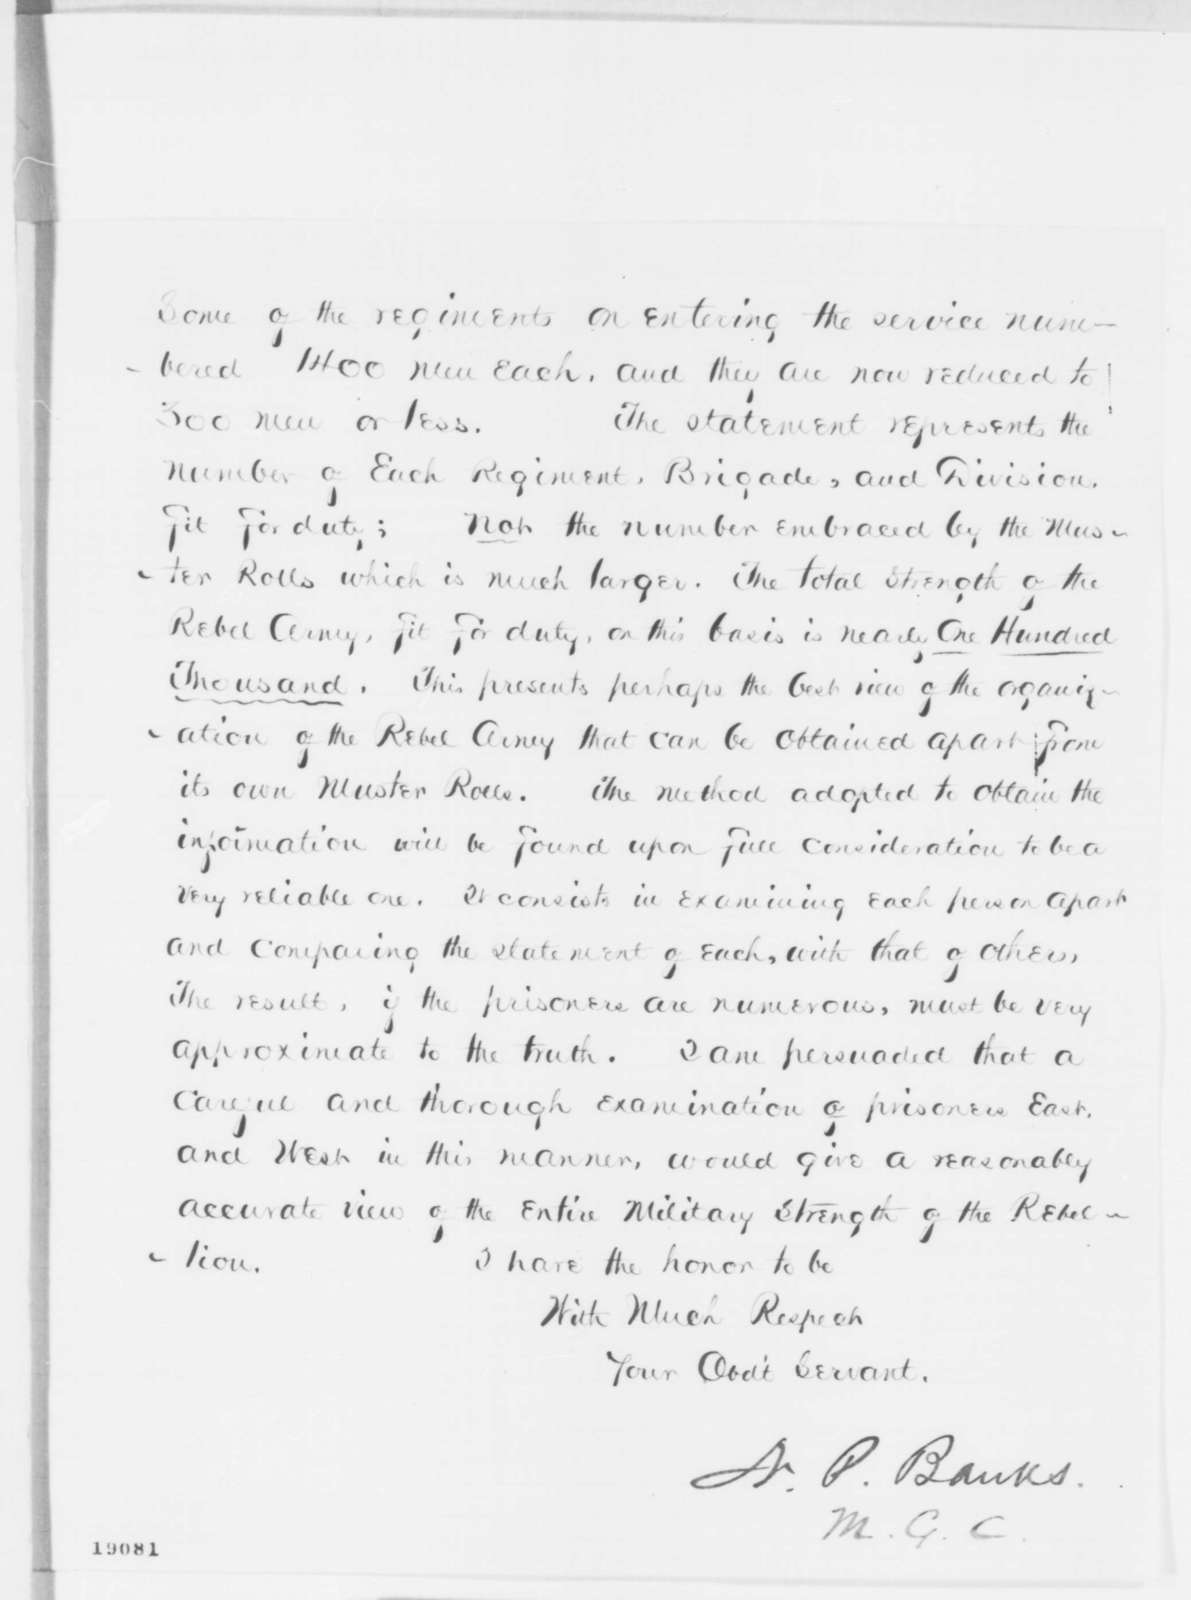 Nathaniel P. Banks to Abraham Lincoln, Monday, October 20, 1862  (Size of Lee's army)